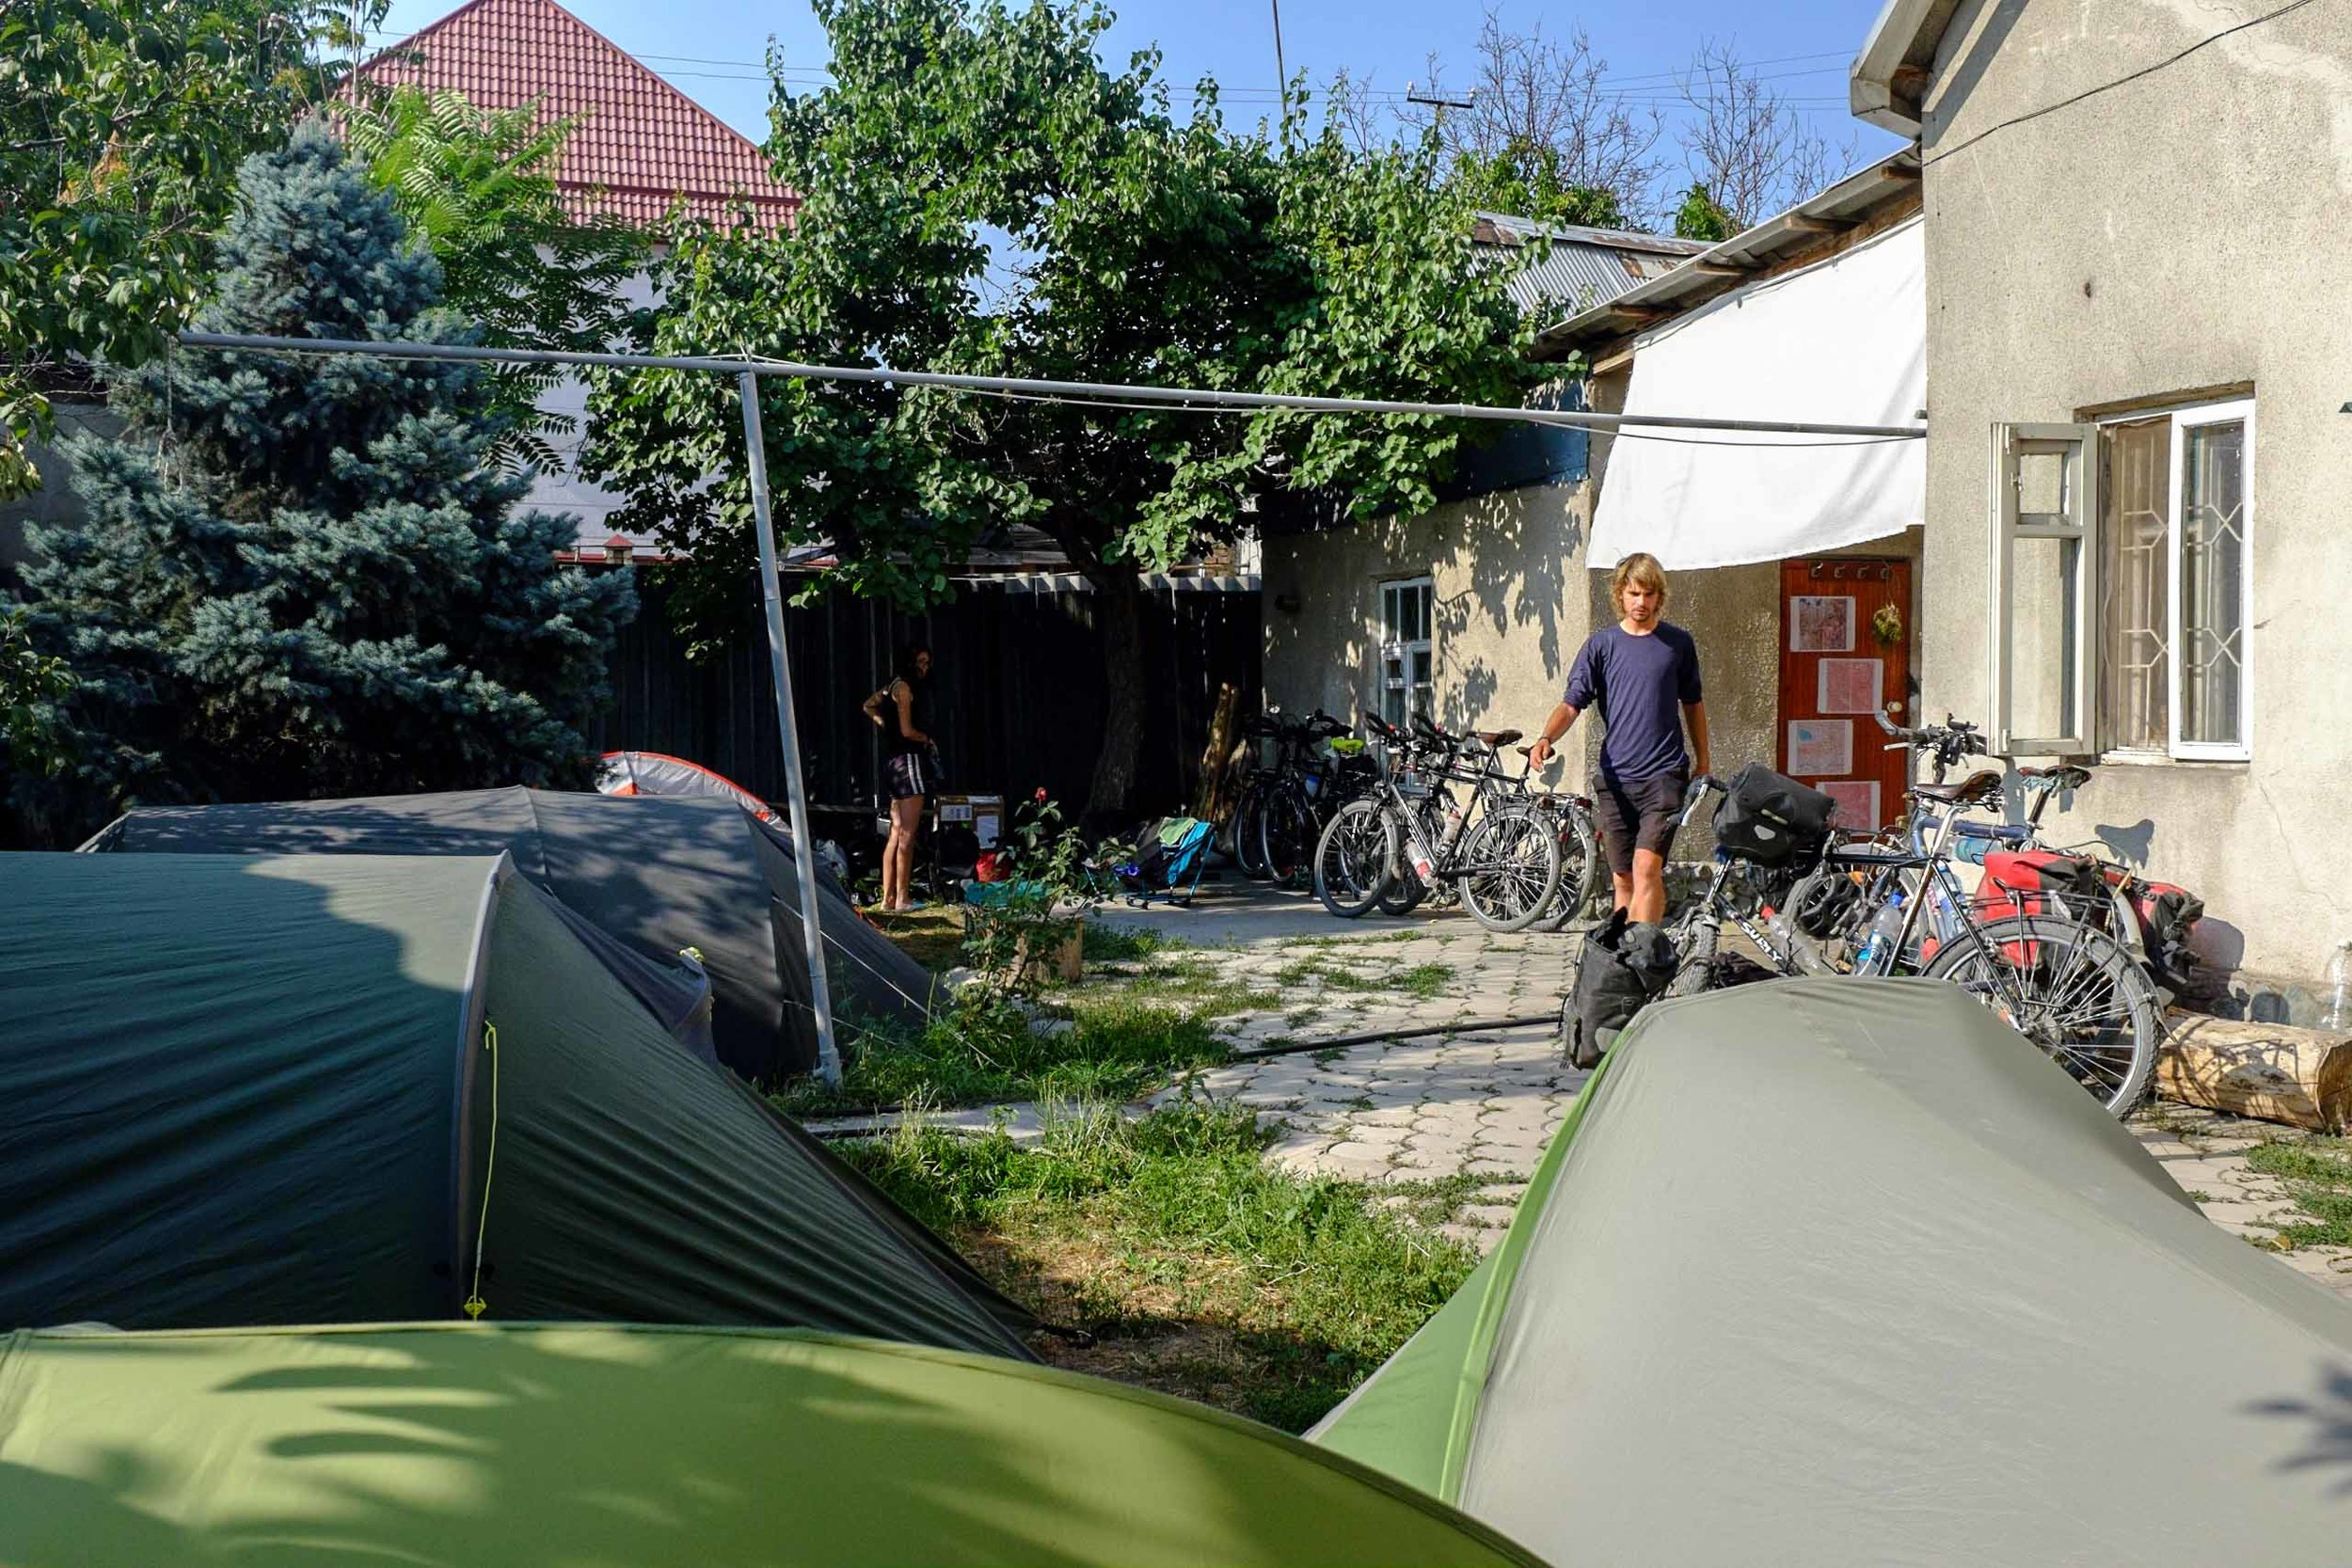 Tent city in the backyard of At-House